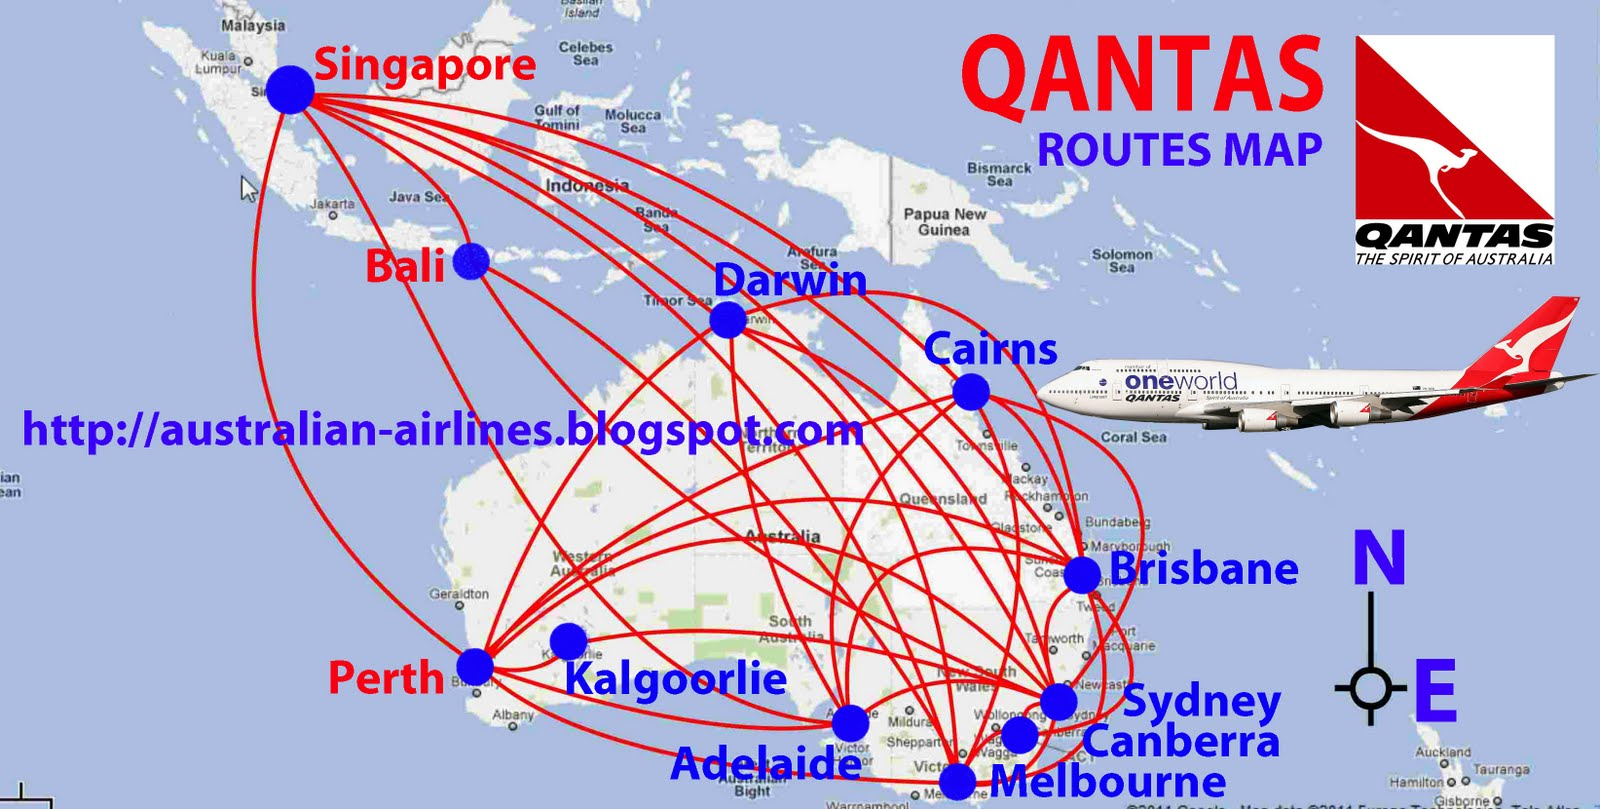 Qantas routes map | Design Plane